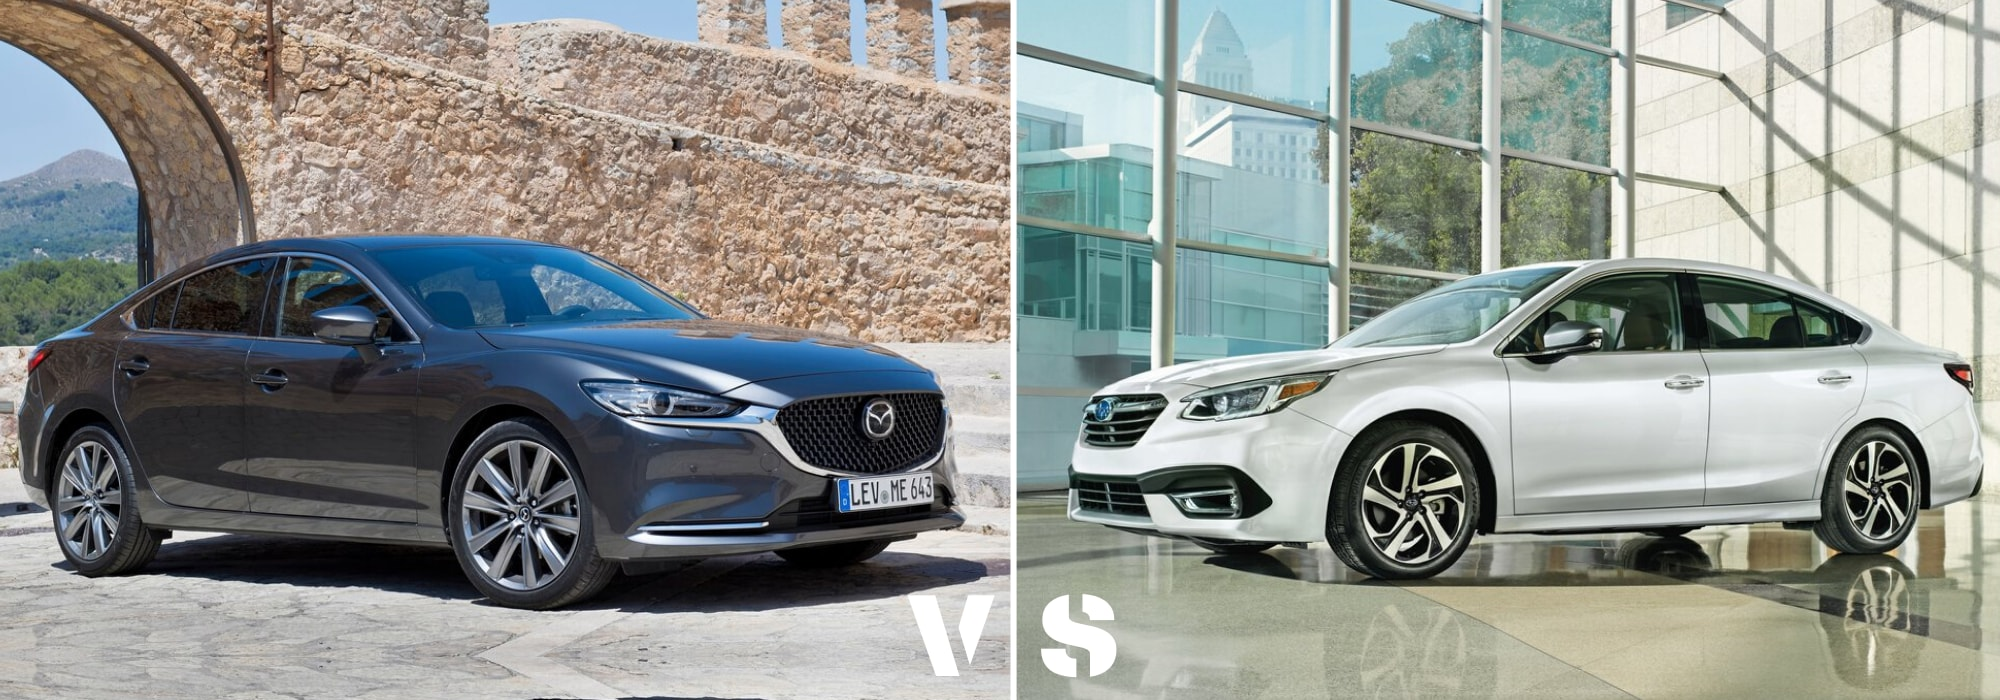 Side by side exterior comparison of the 2020 Mazda6 sedan and 2020 Subaru Legacy